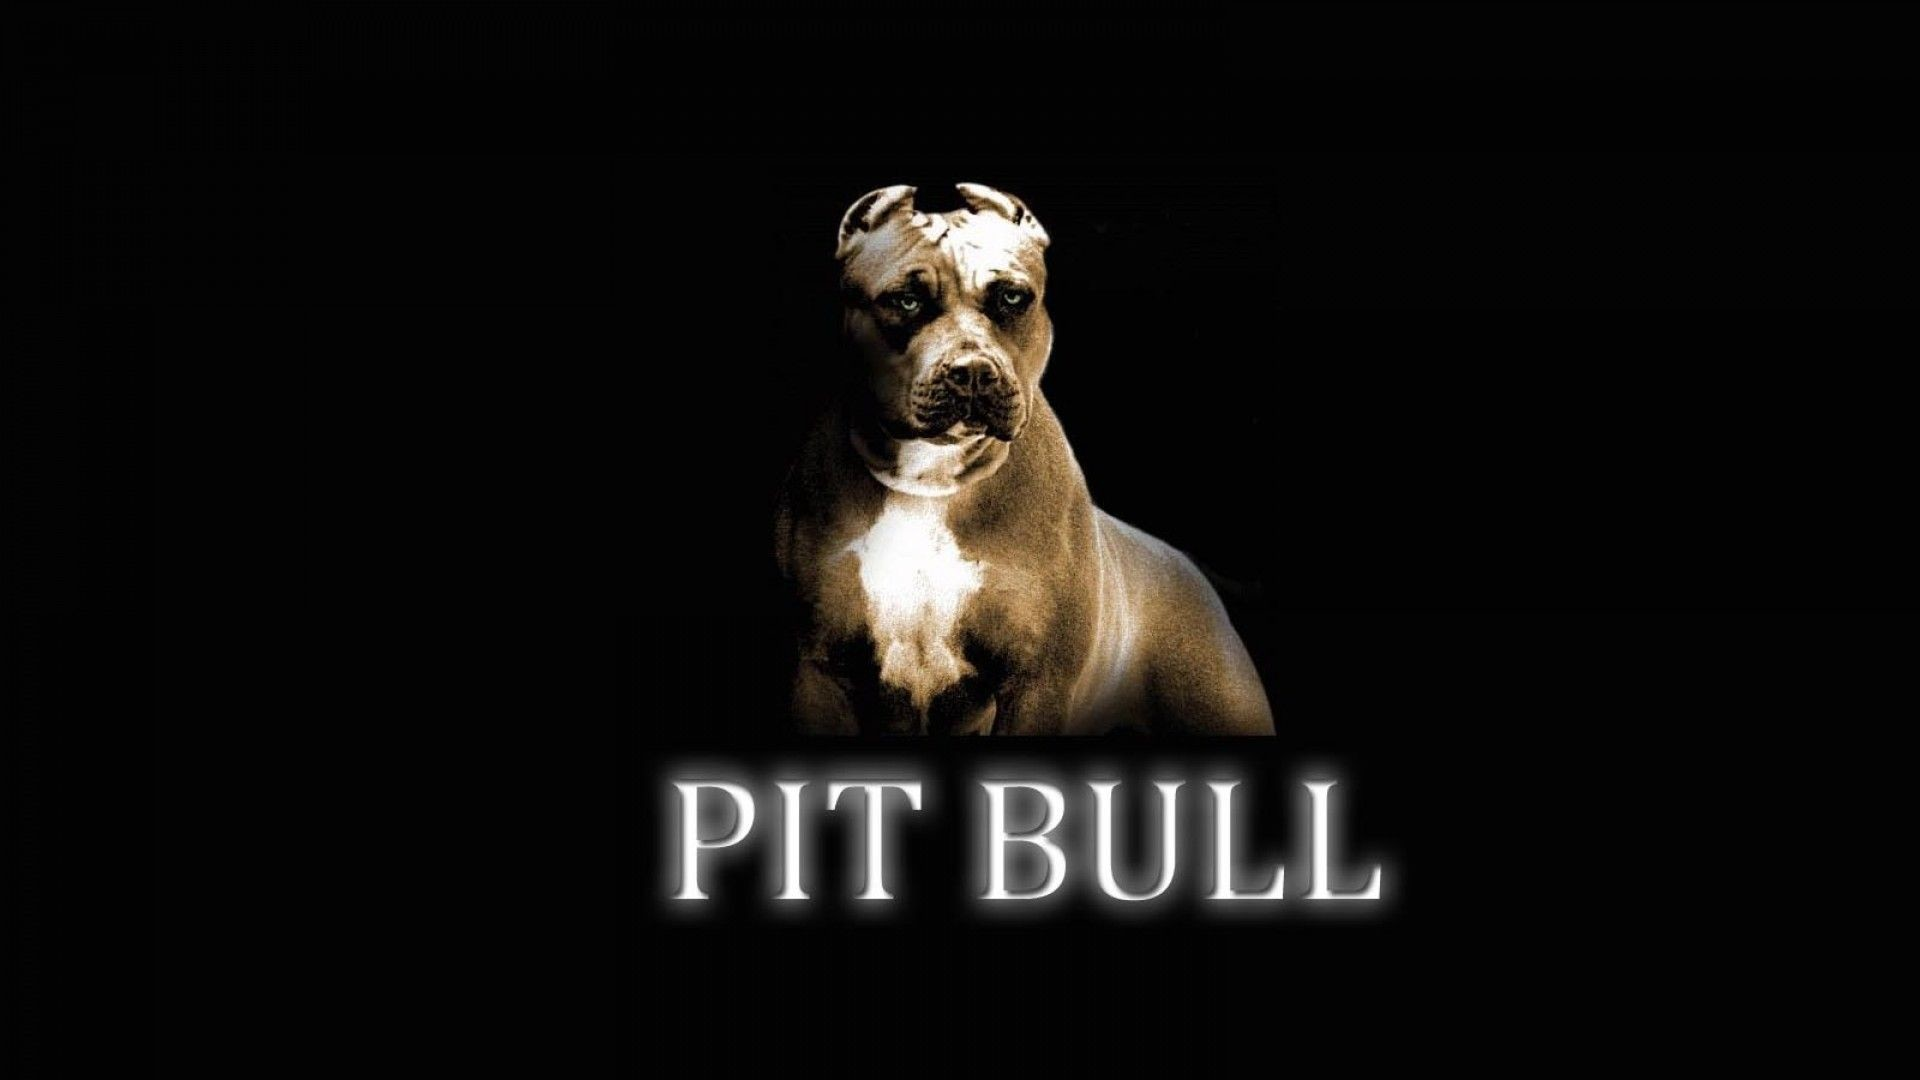 1920x1080 Pitbull Wallpaper, Bulls Wallpaper, Cute Puppy Wallpaper, Dog Wallpaper,  Wallpaper Pictures,